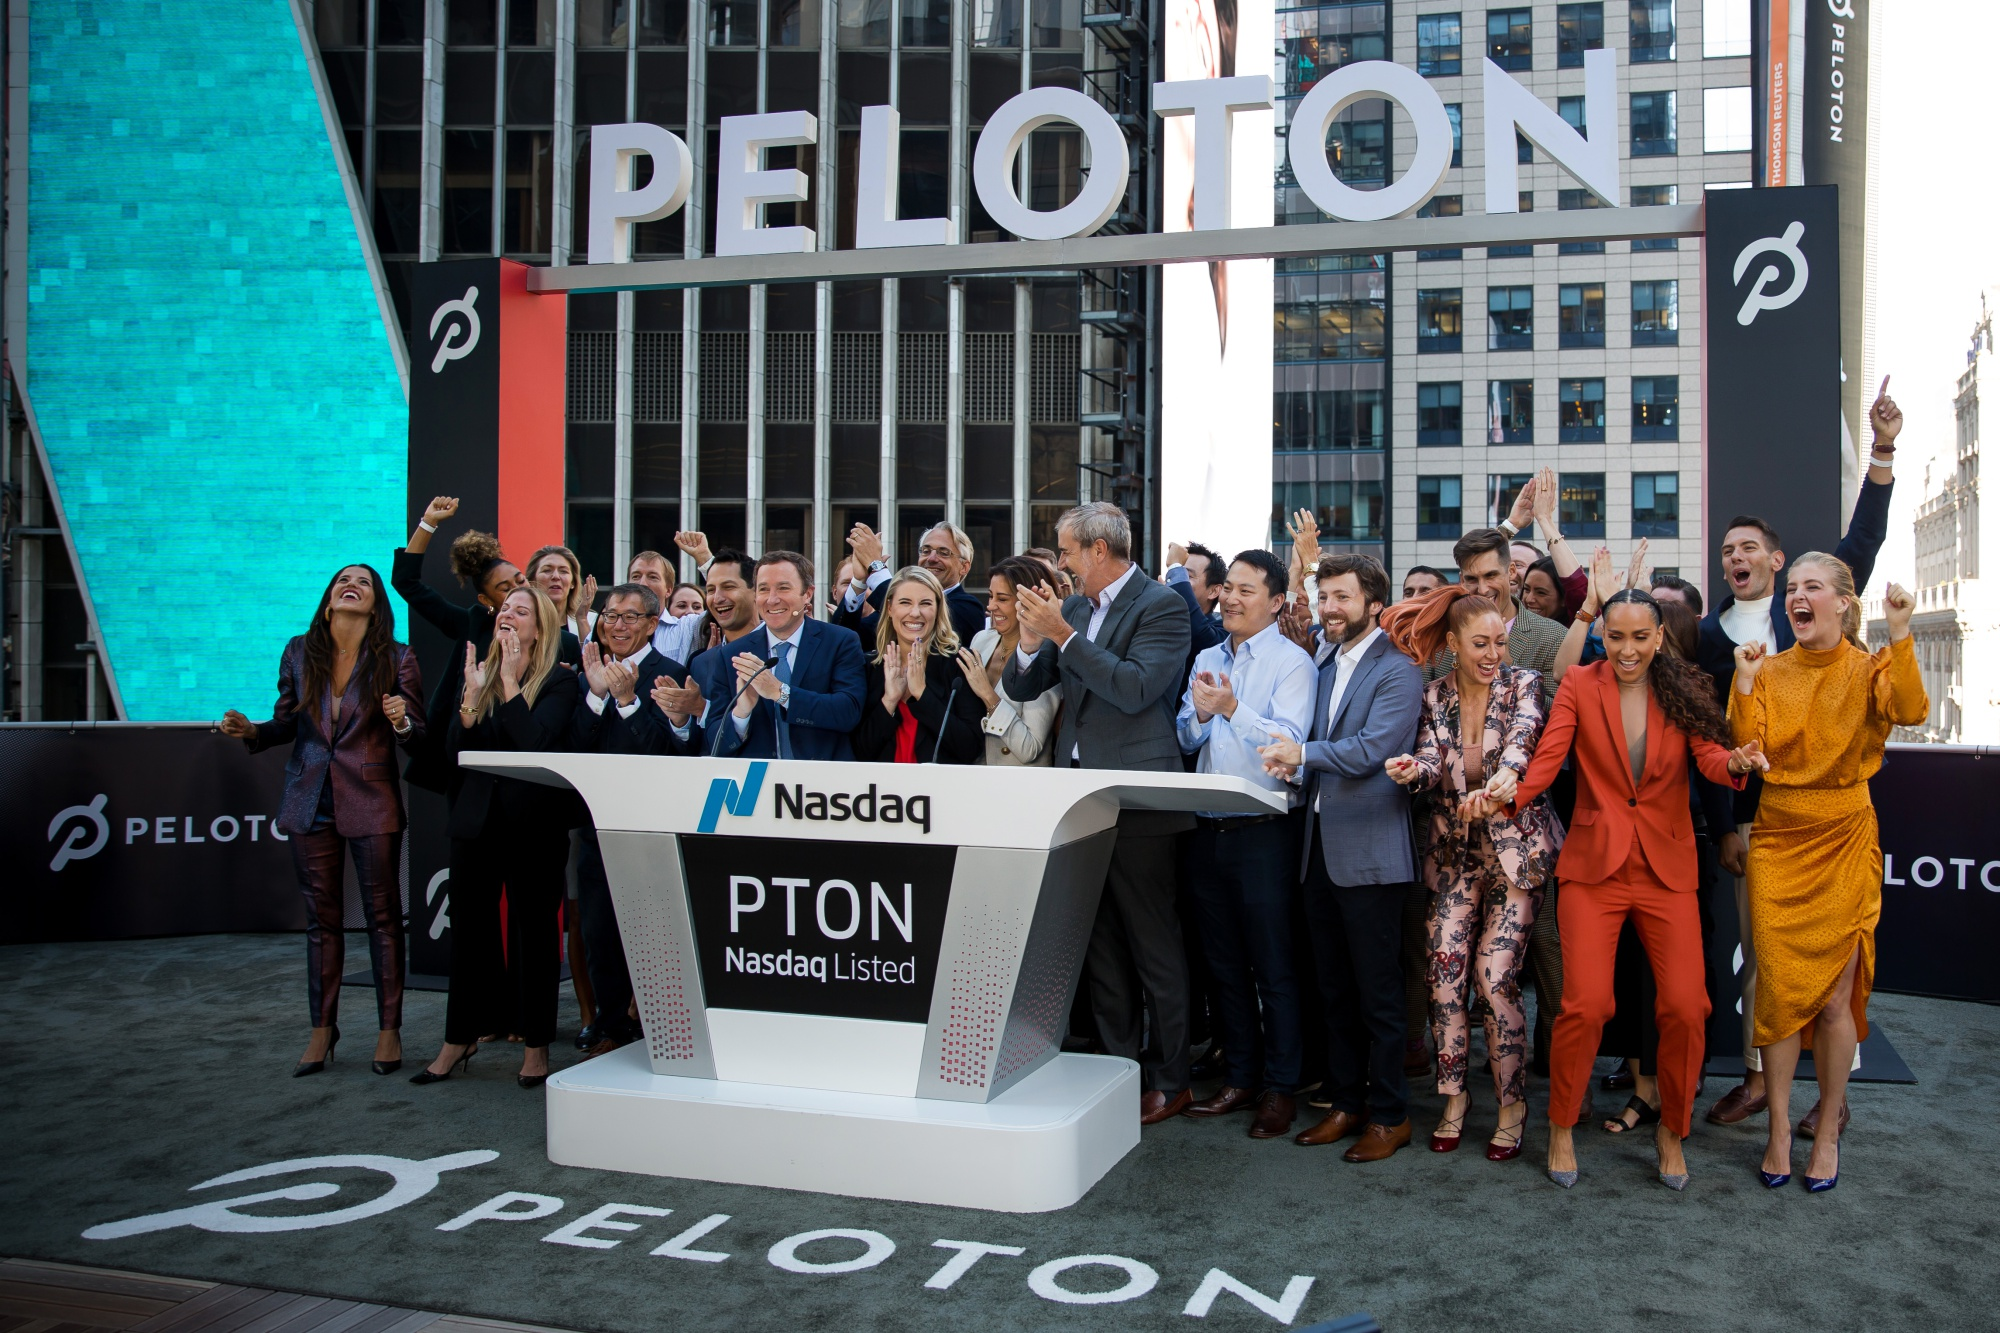 How the pton stock remains the highly preferred one?